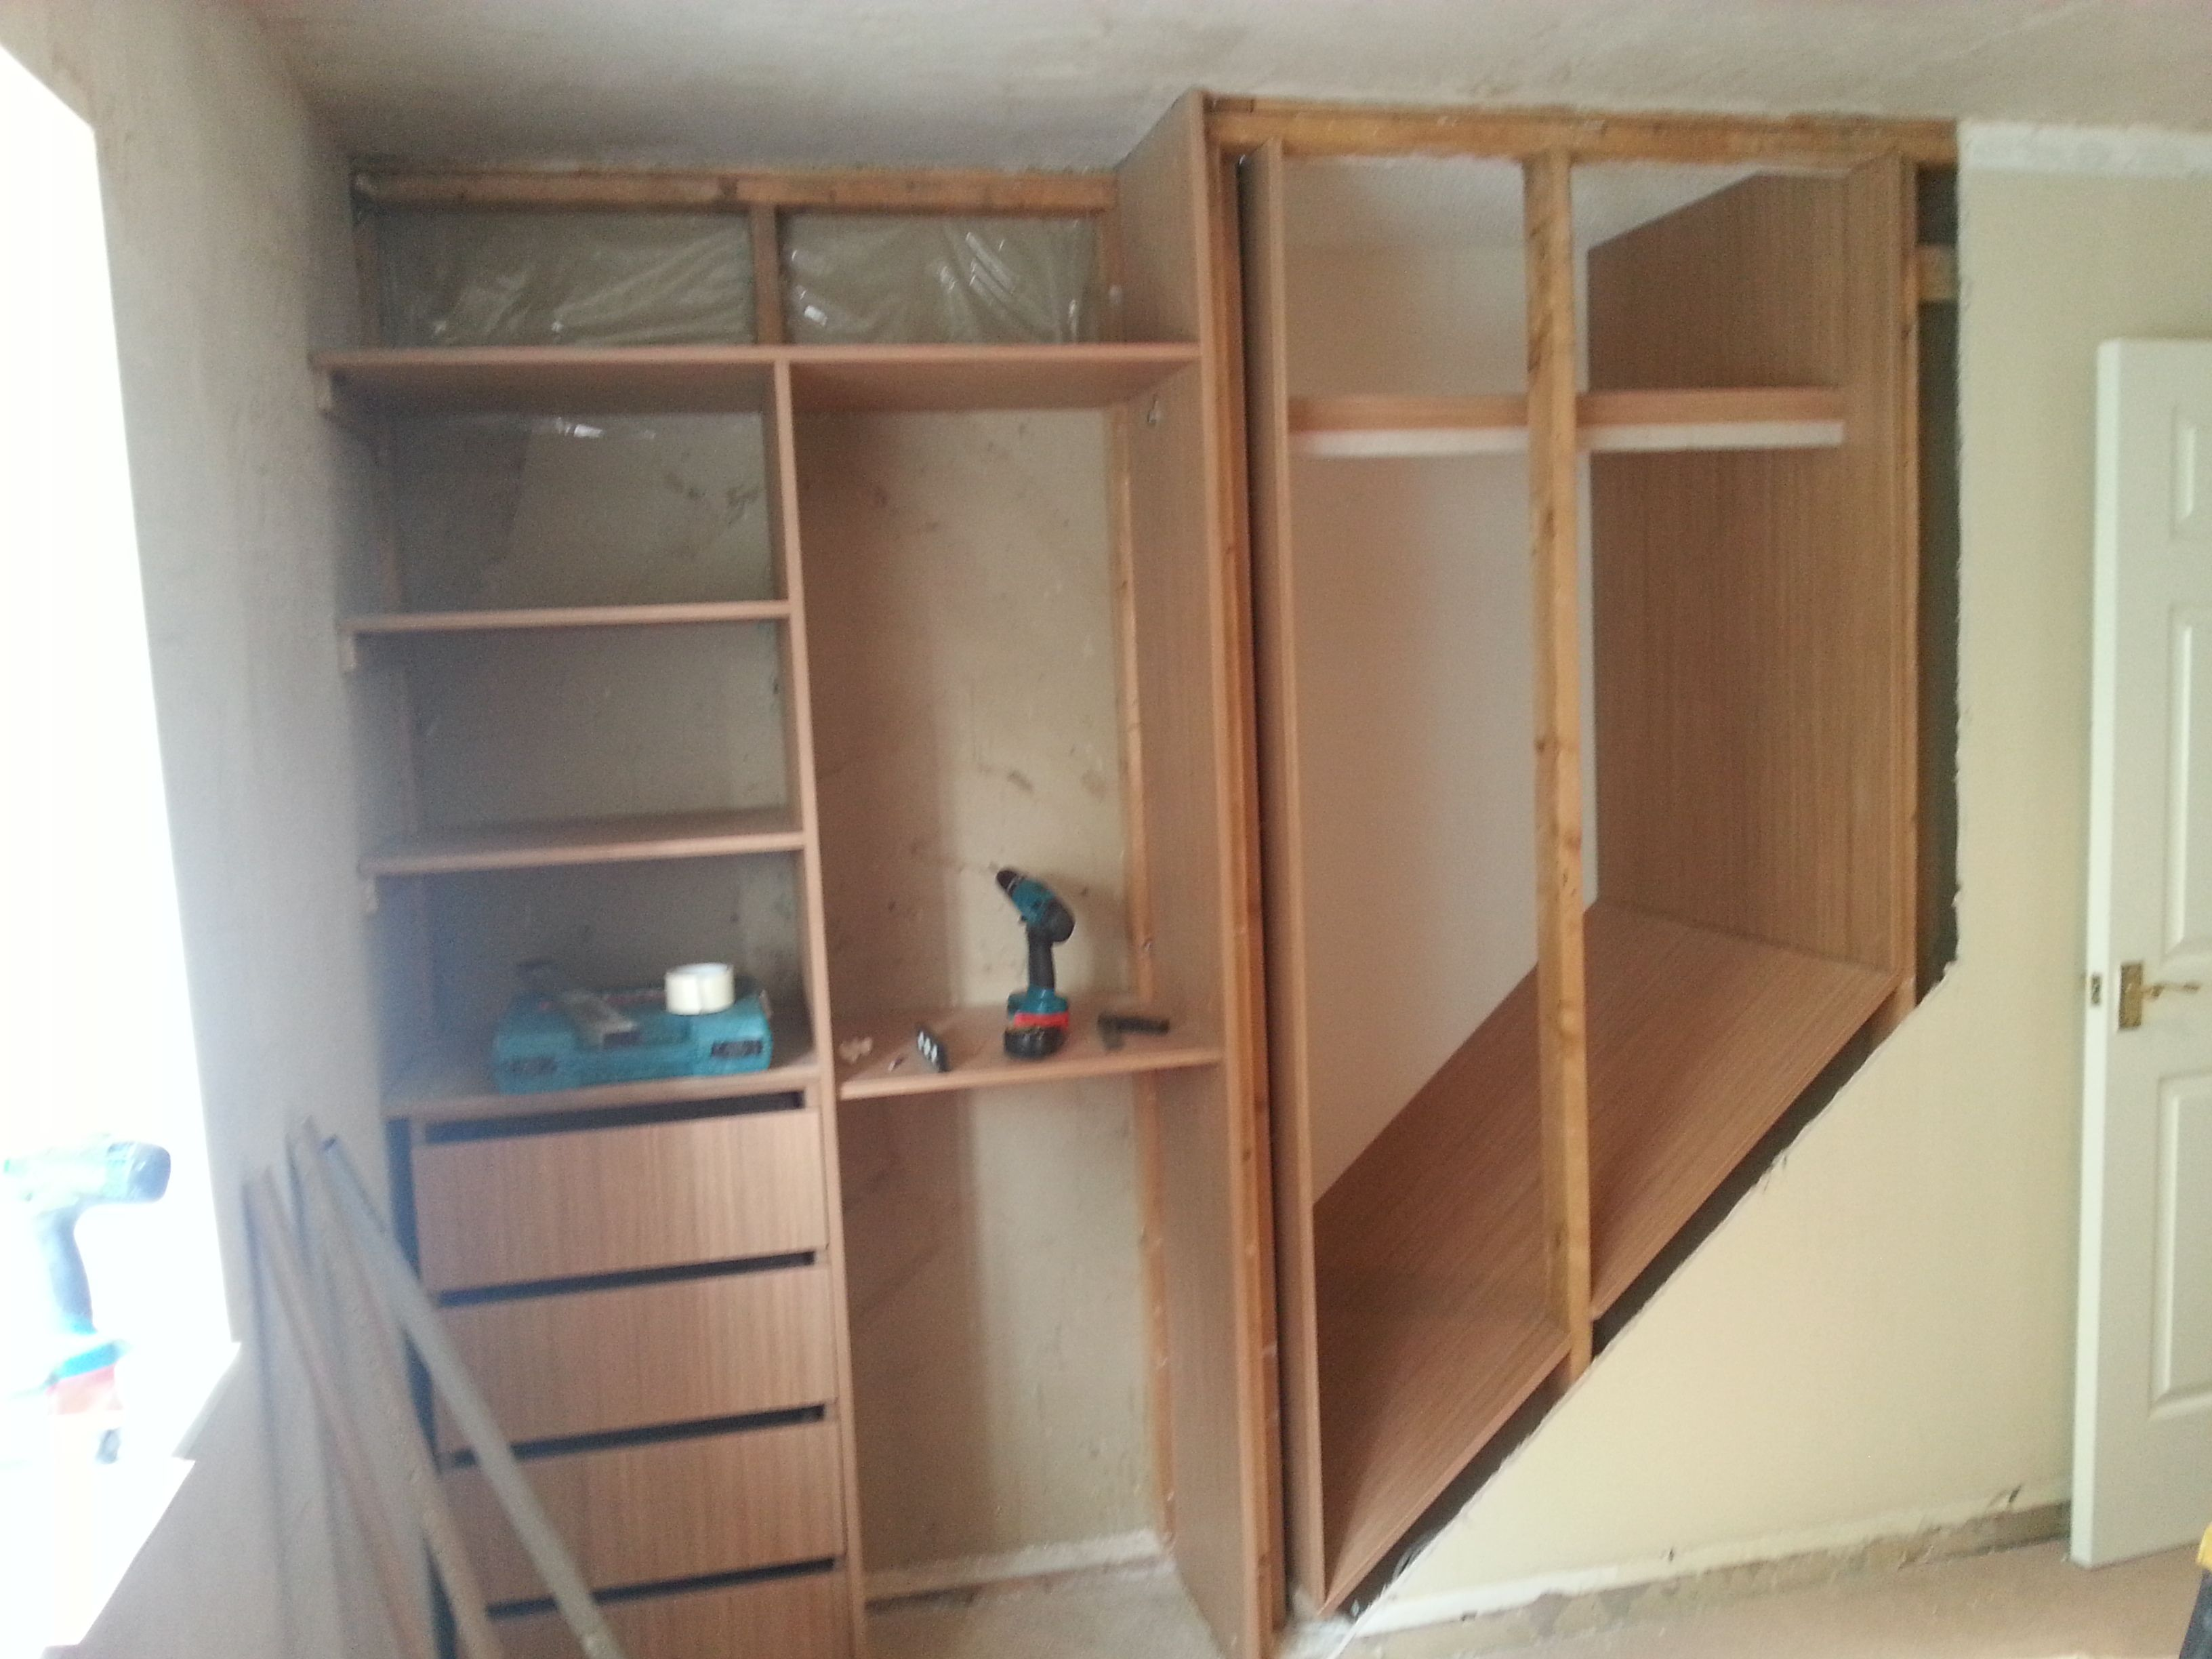 Box Room Wardrobe Using The Space Above The Staircase For A Custom Closet Home